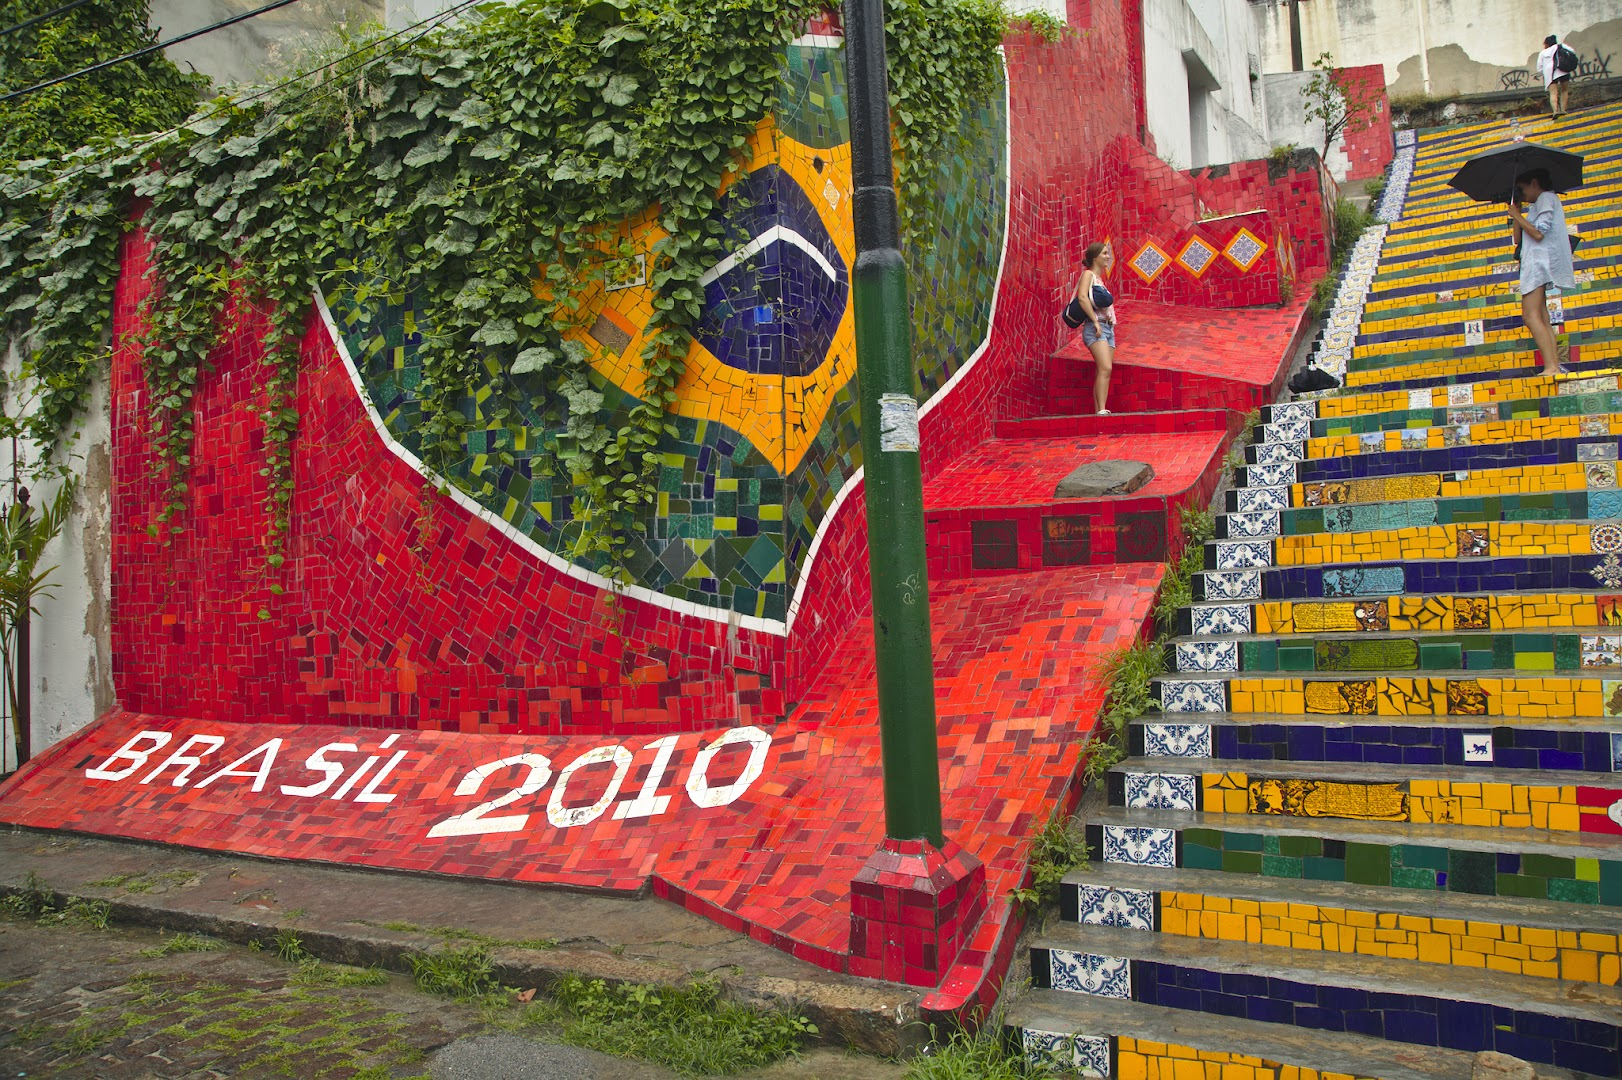 Escadaria Selaron - stairs made from tiles brought from all around the world